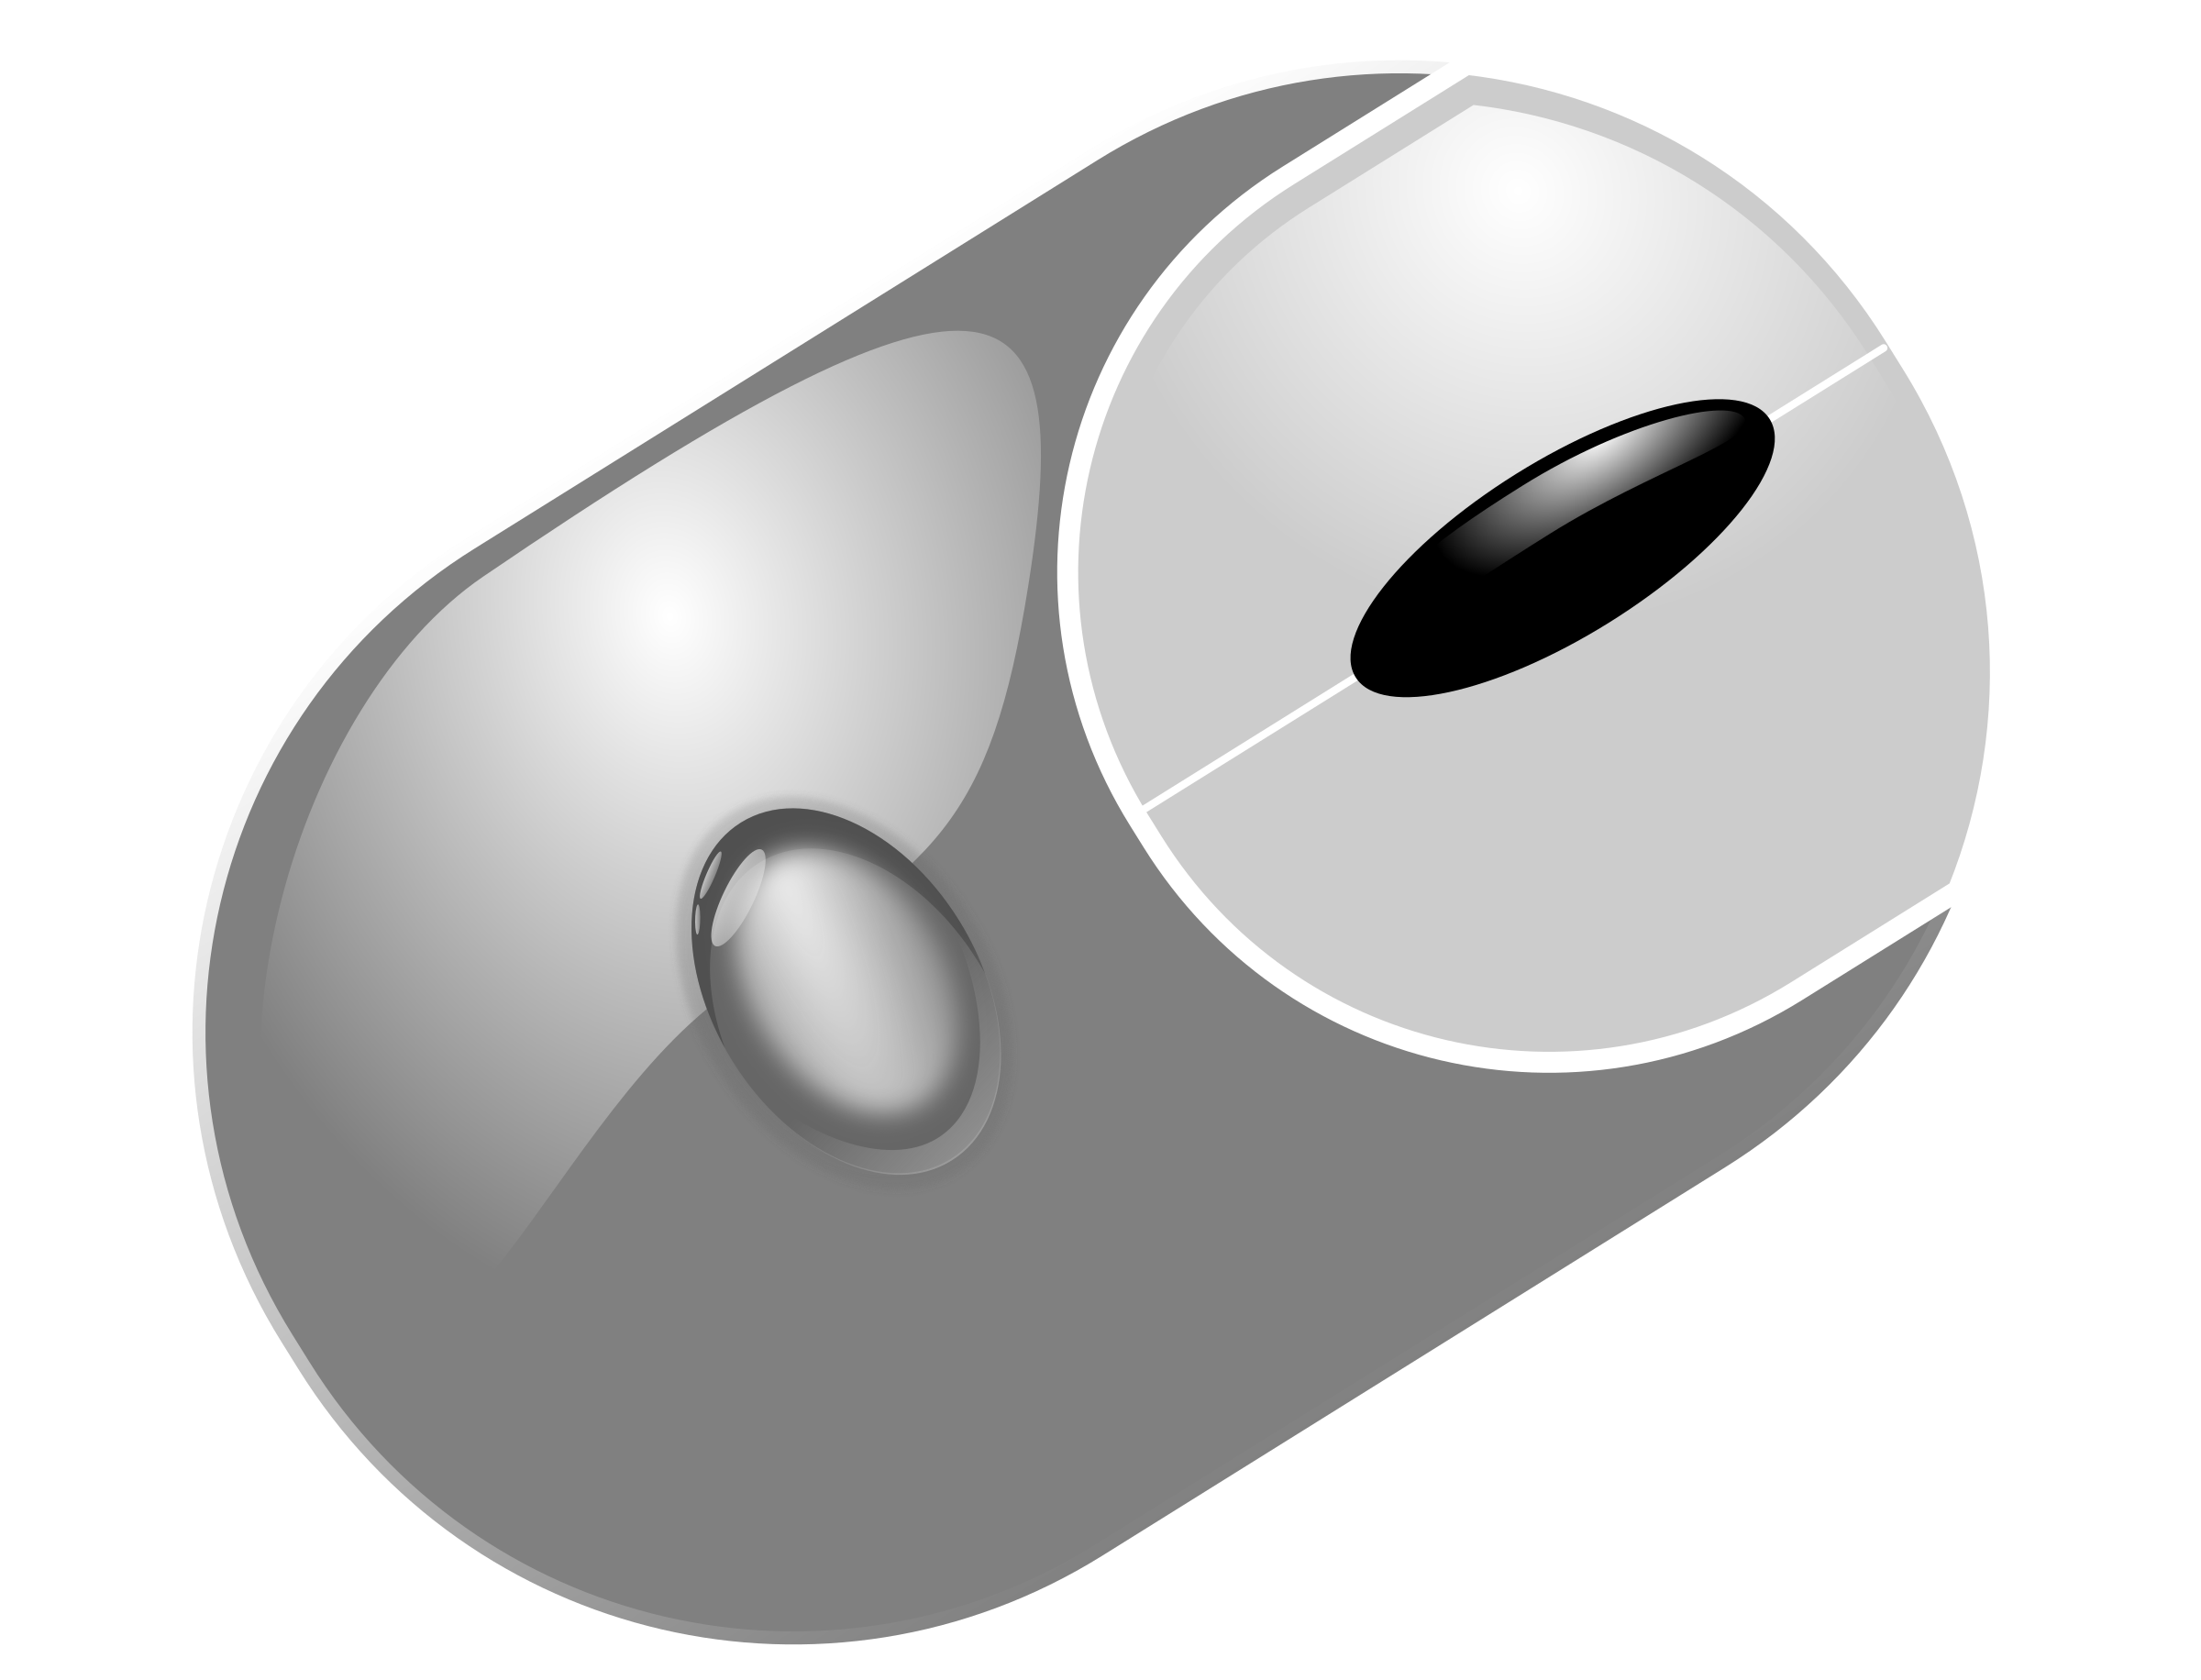 Mice clipart wireless mouse. Computer big image png